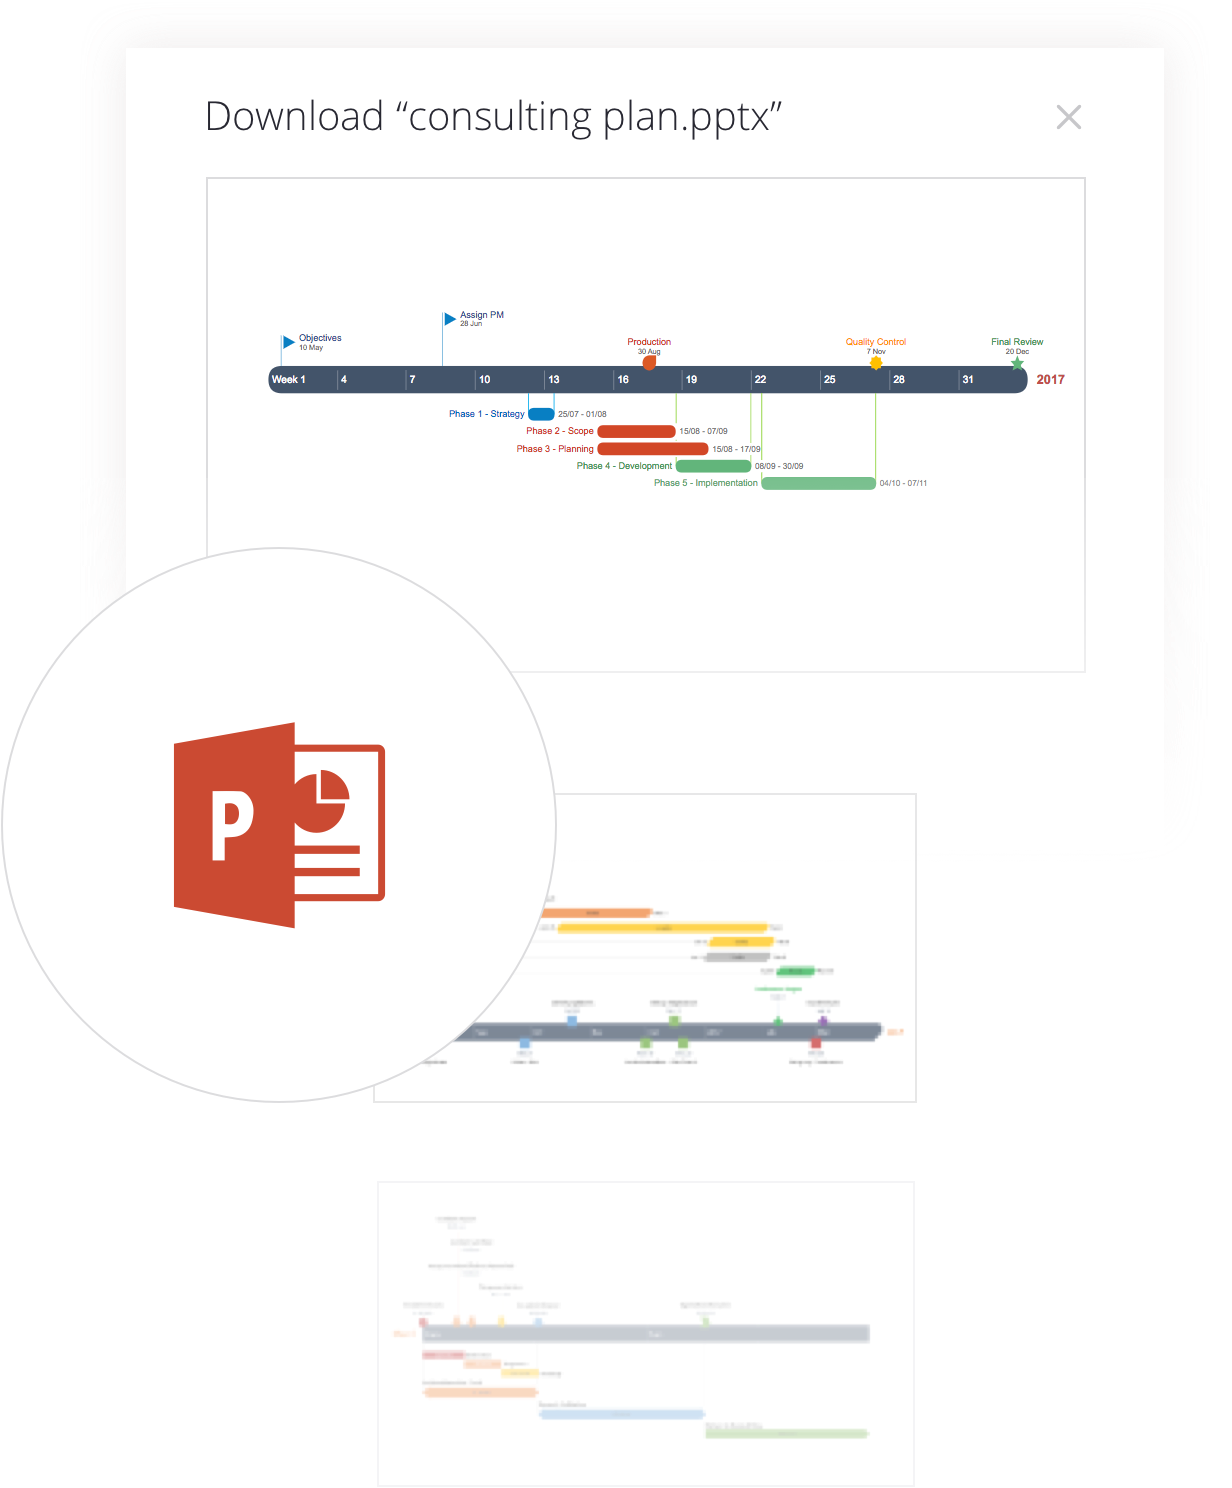 Download more PowerPoint timelines